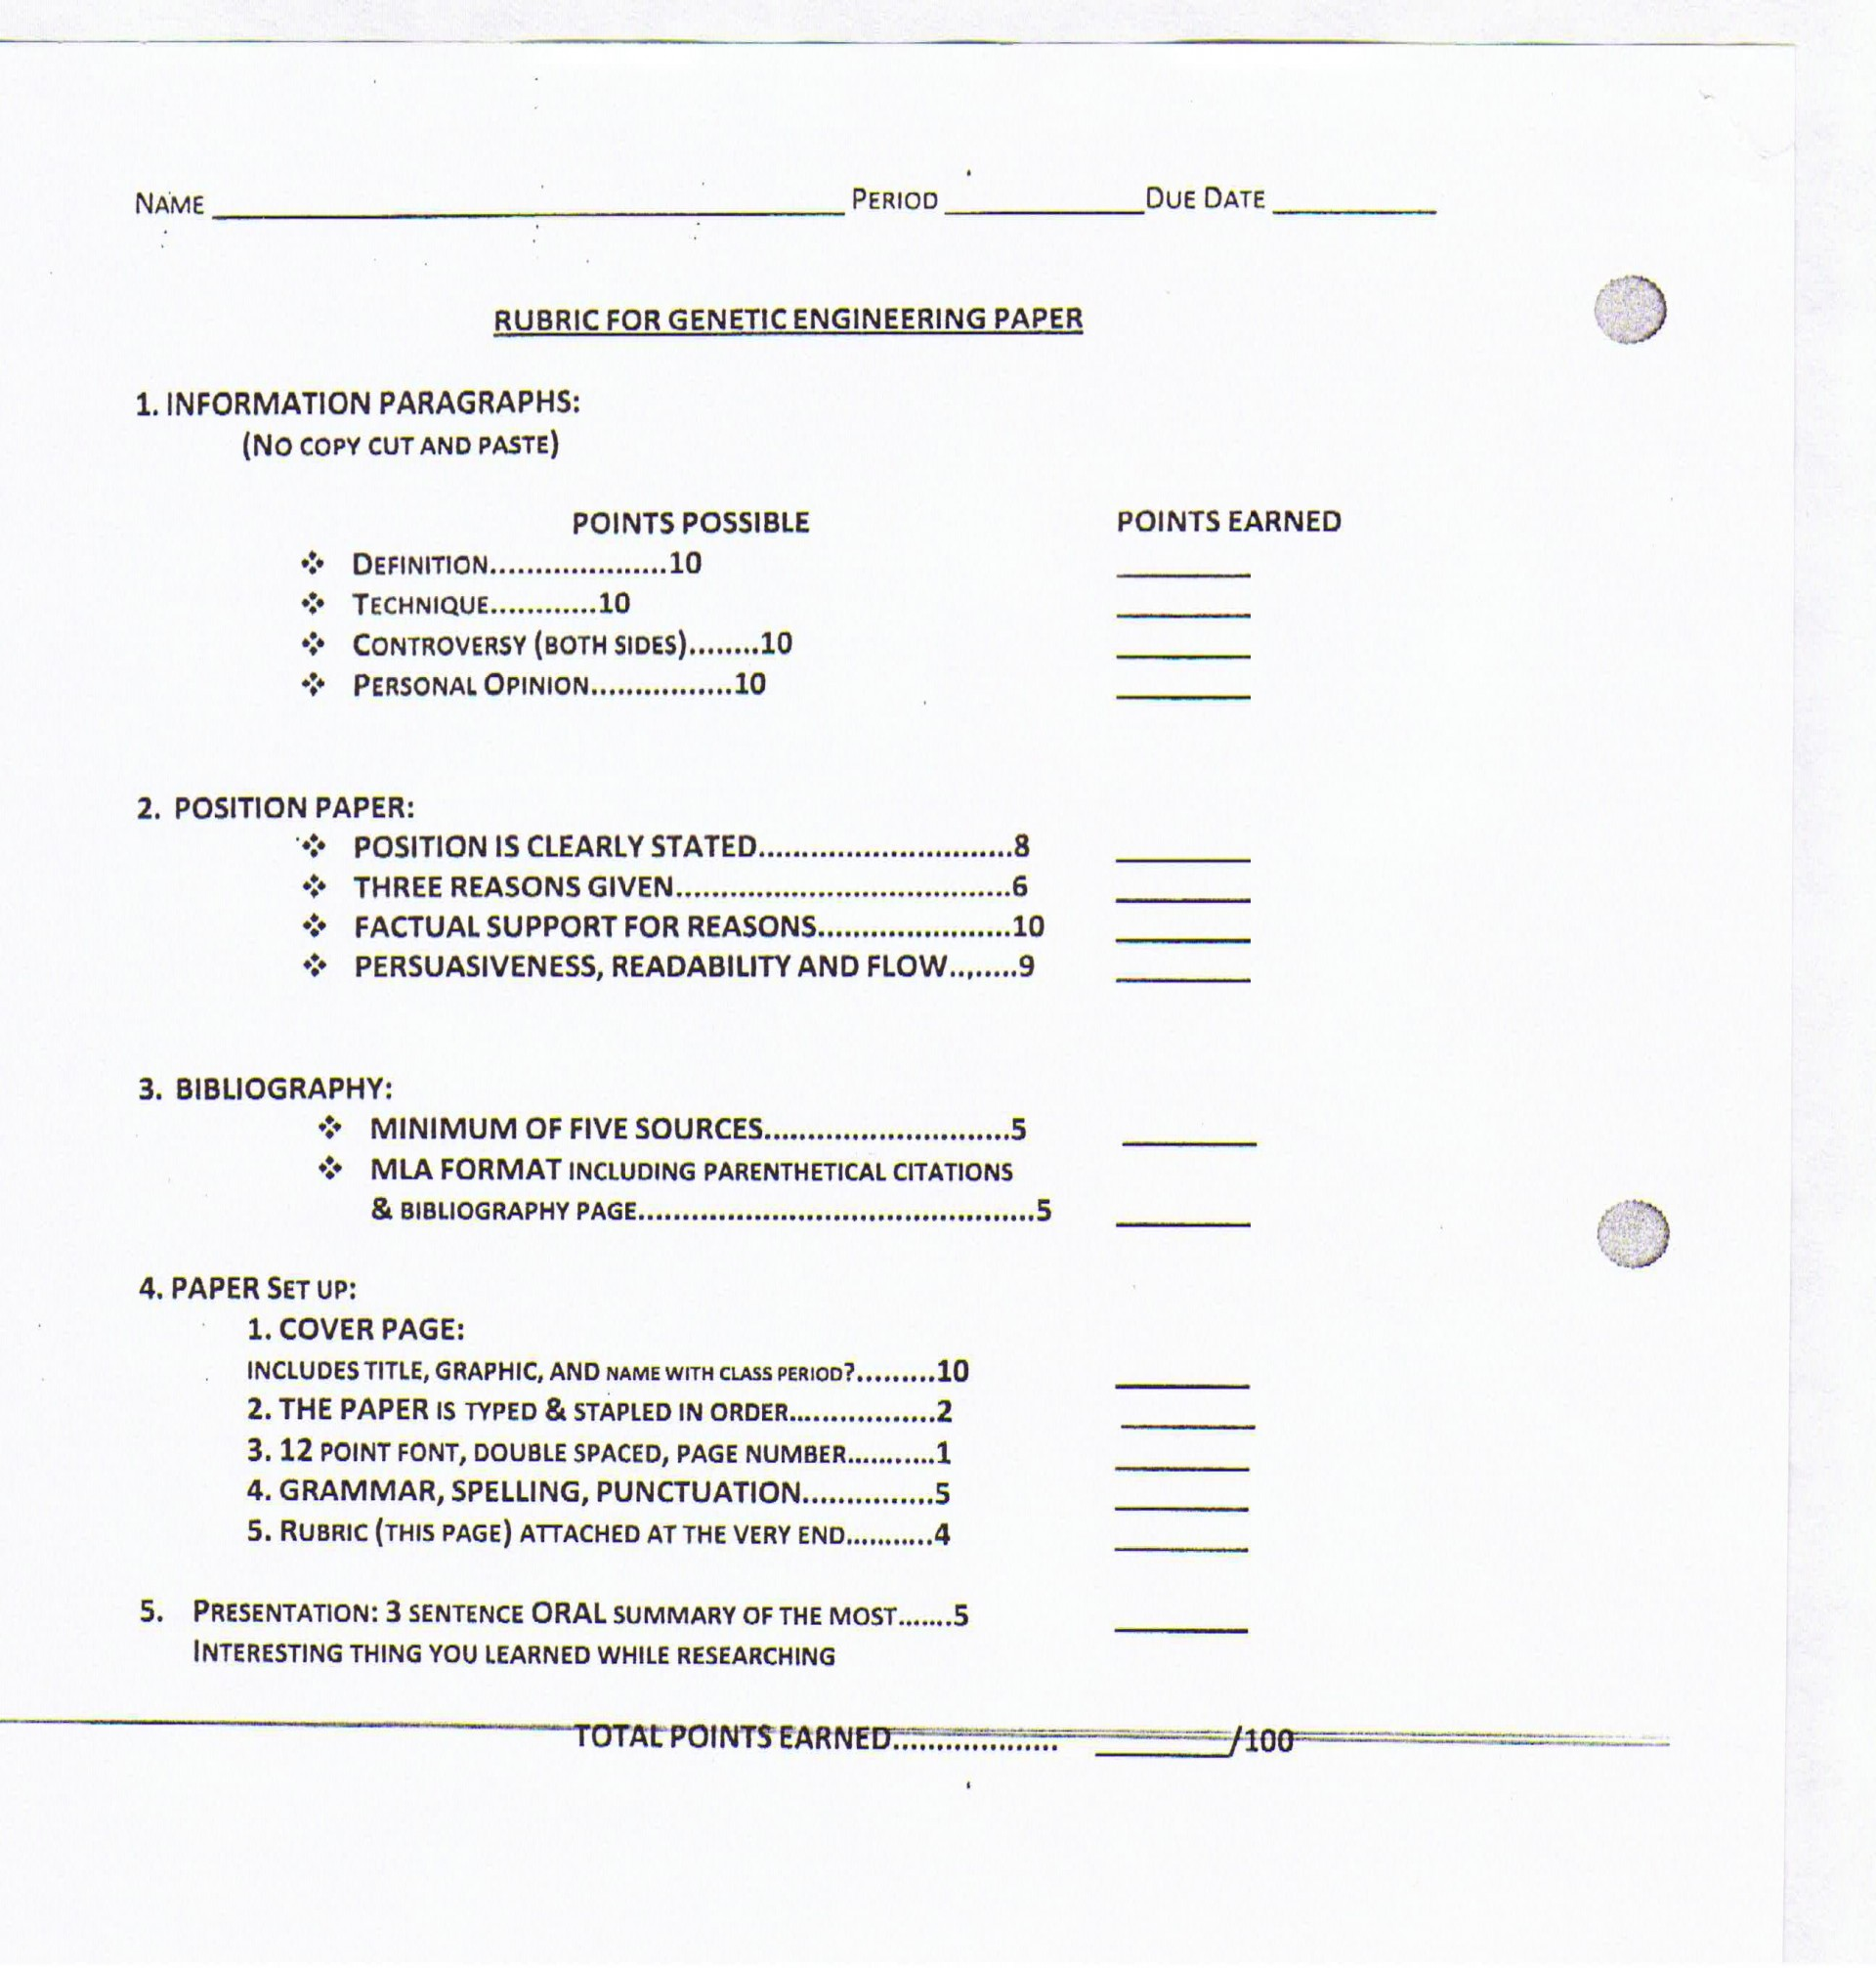 004 Research20paper202 Jpg Biology Research Paper Dreaded Rubric High School 1920